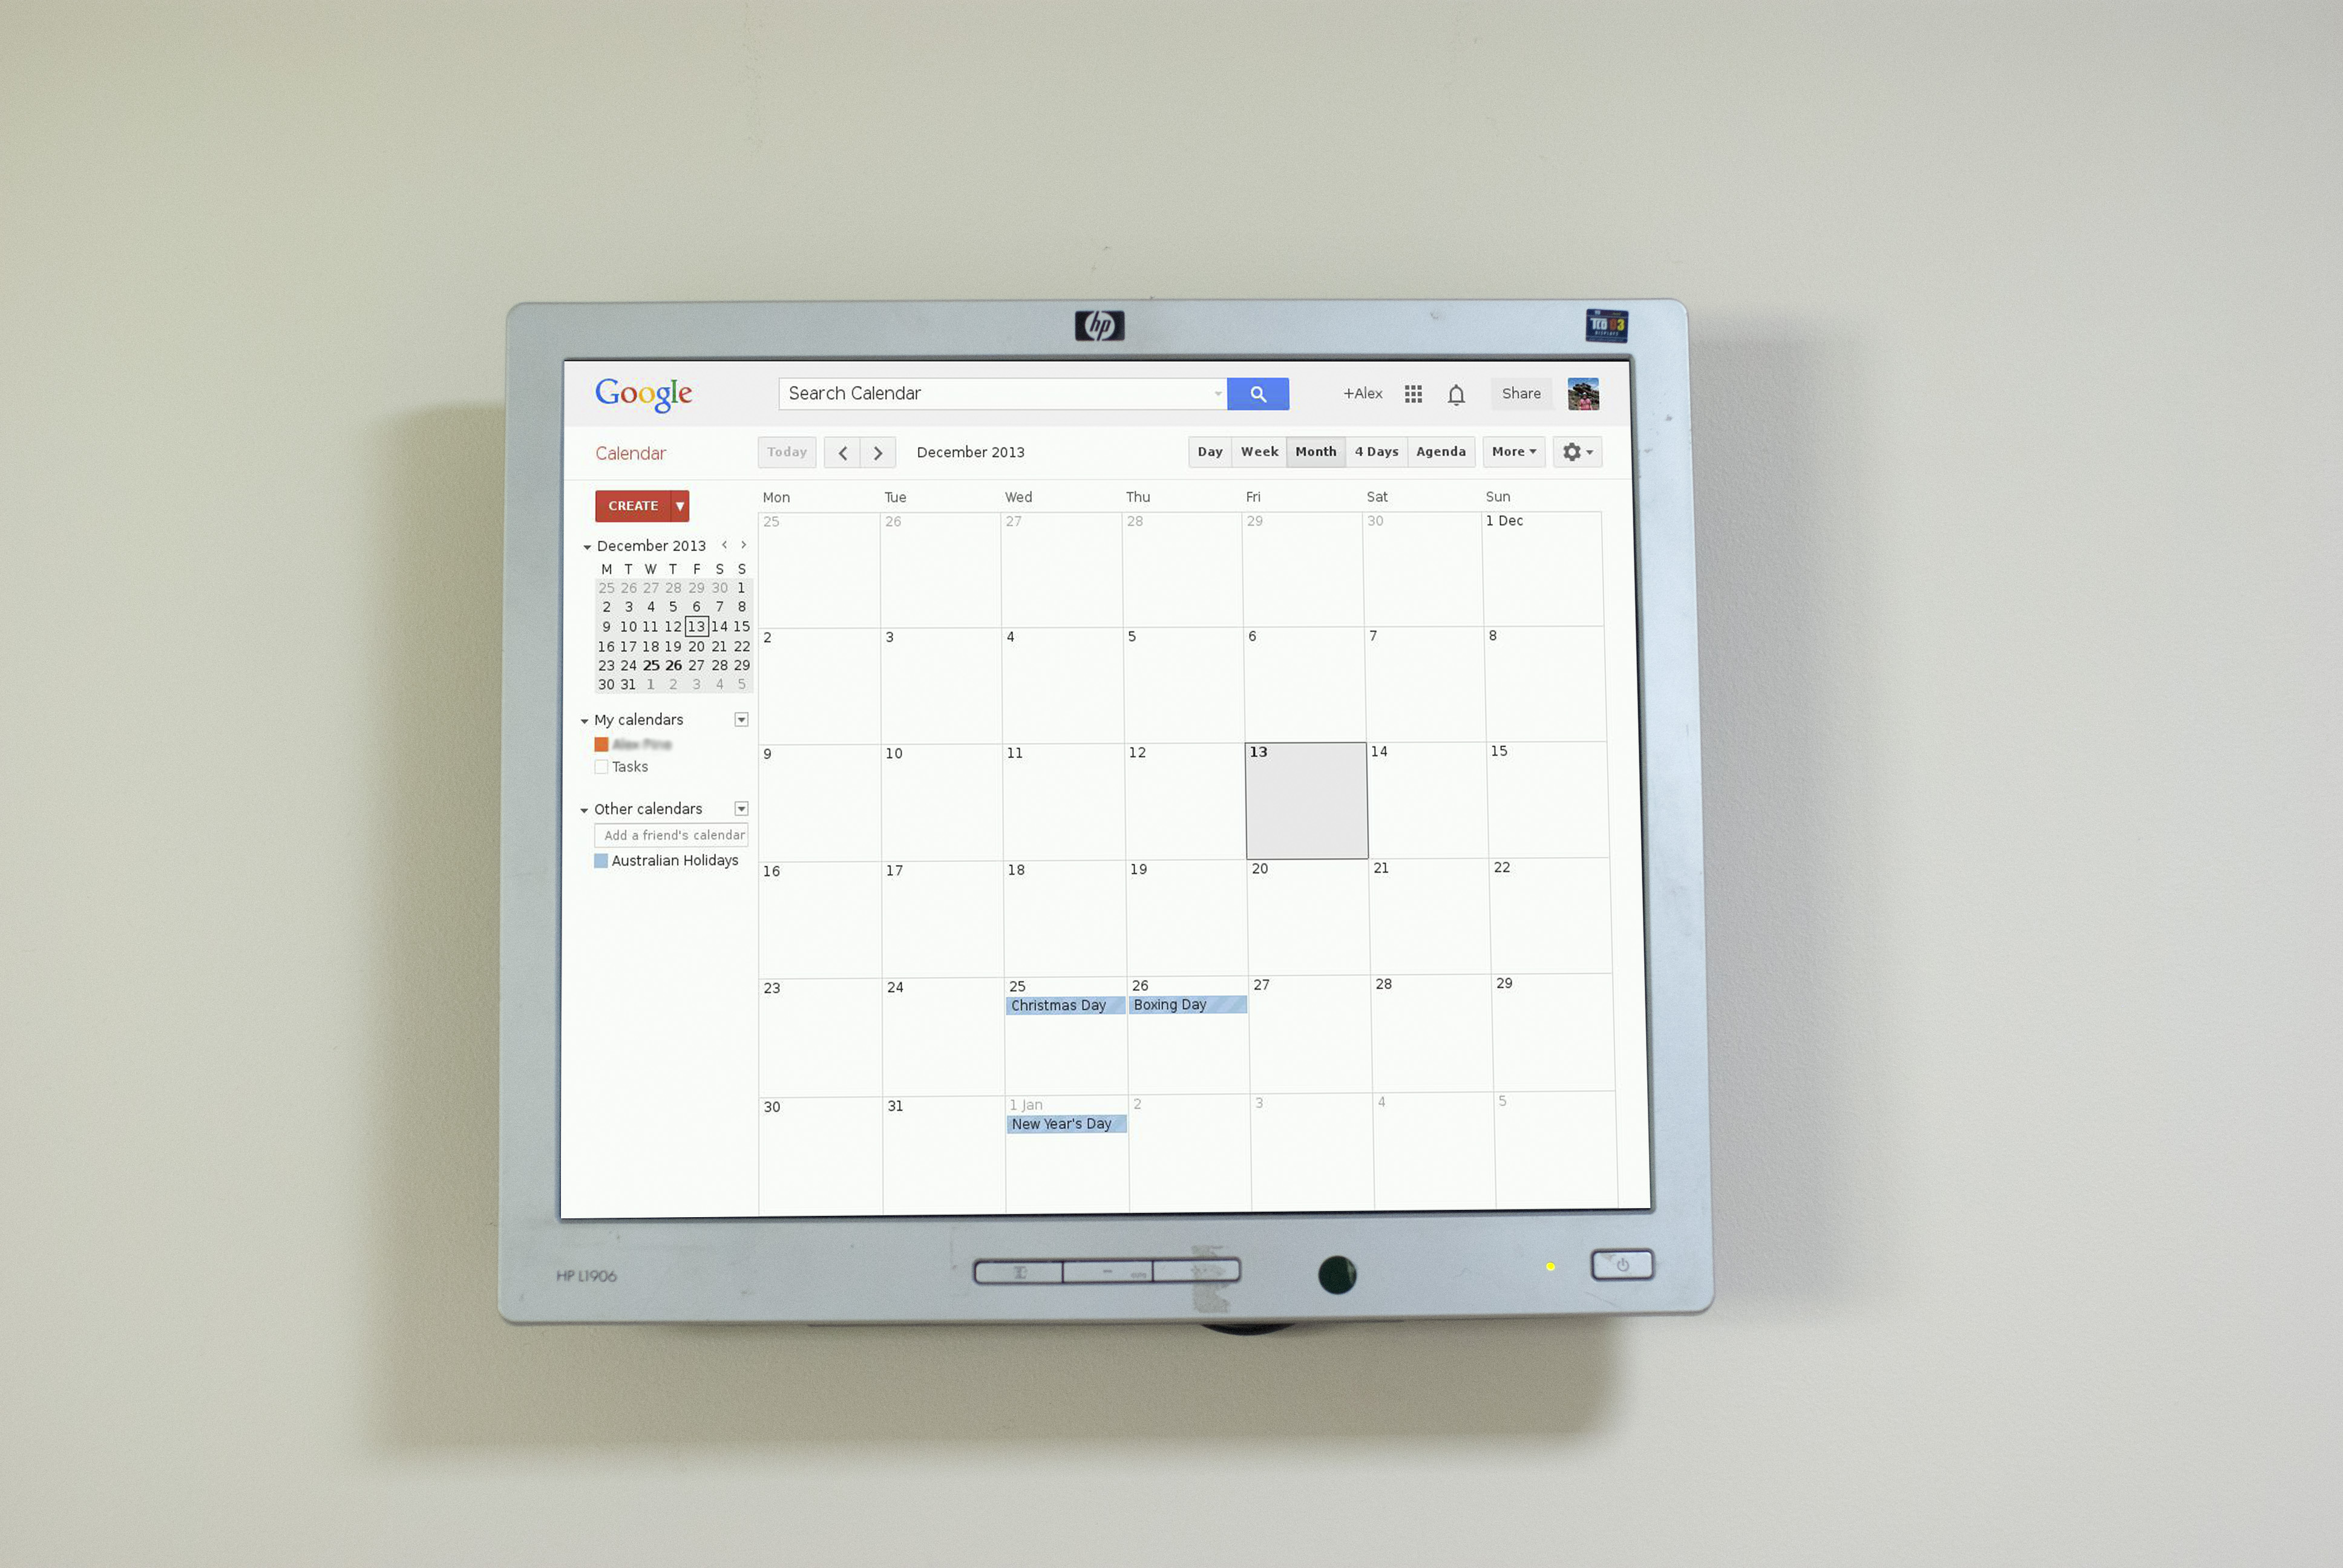 Raspberry Pi Wall Mounted Google Calendar: 6 Steps (with Pictures)